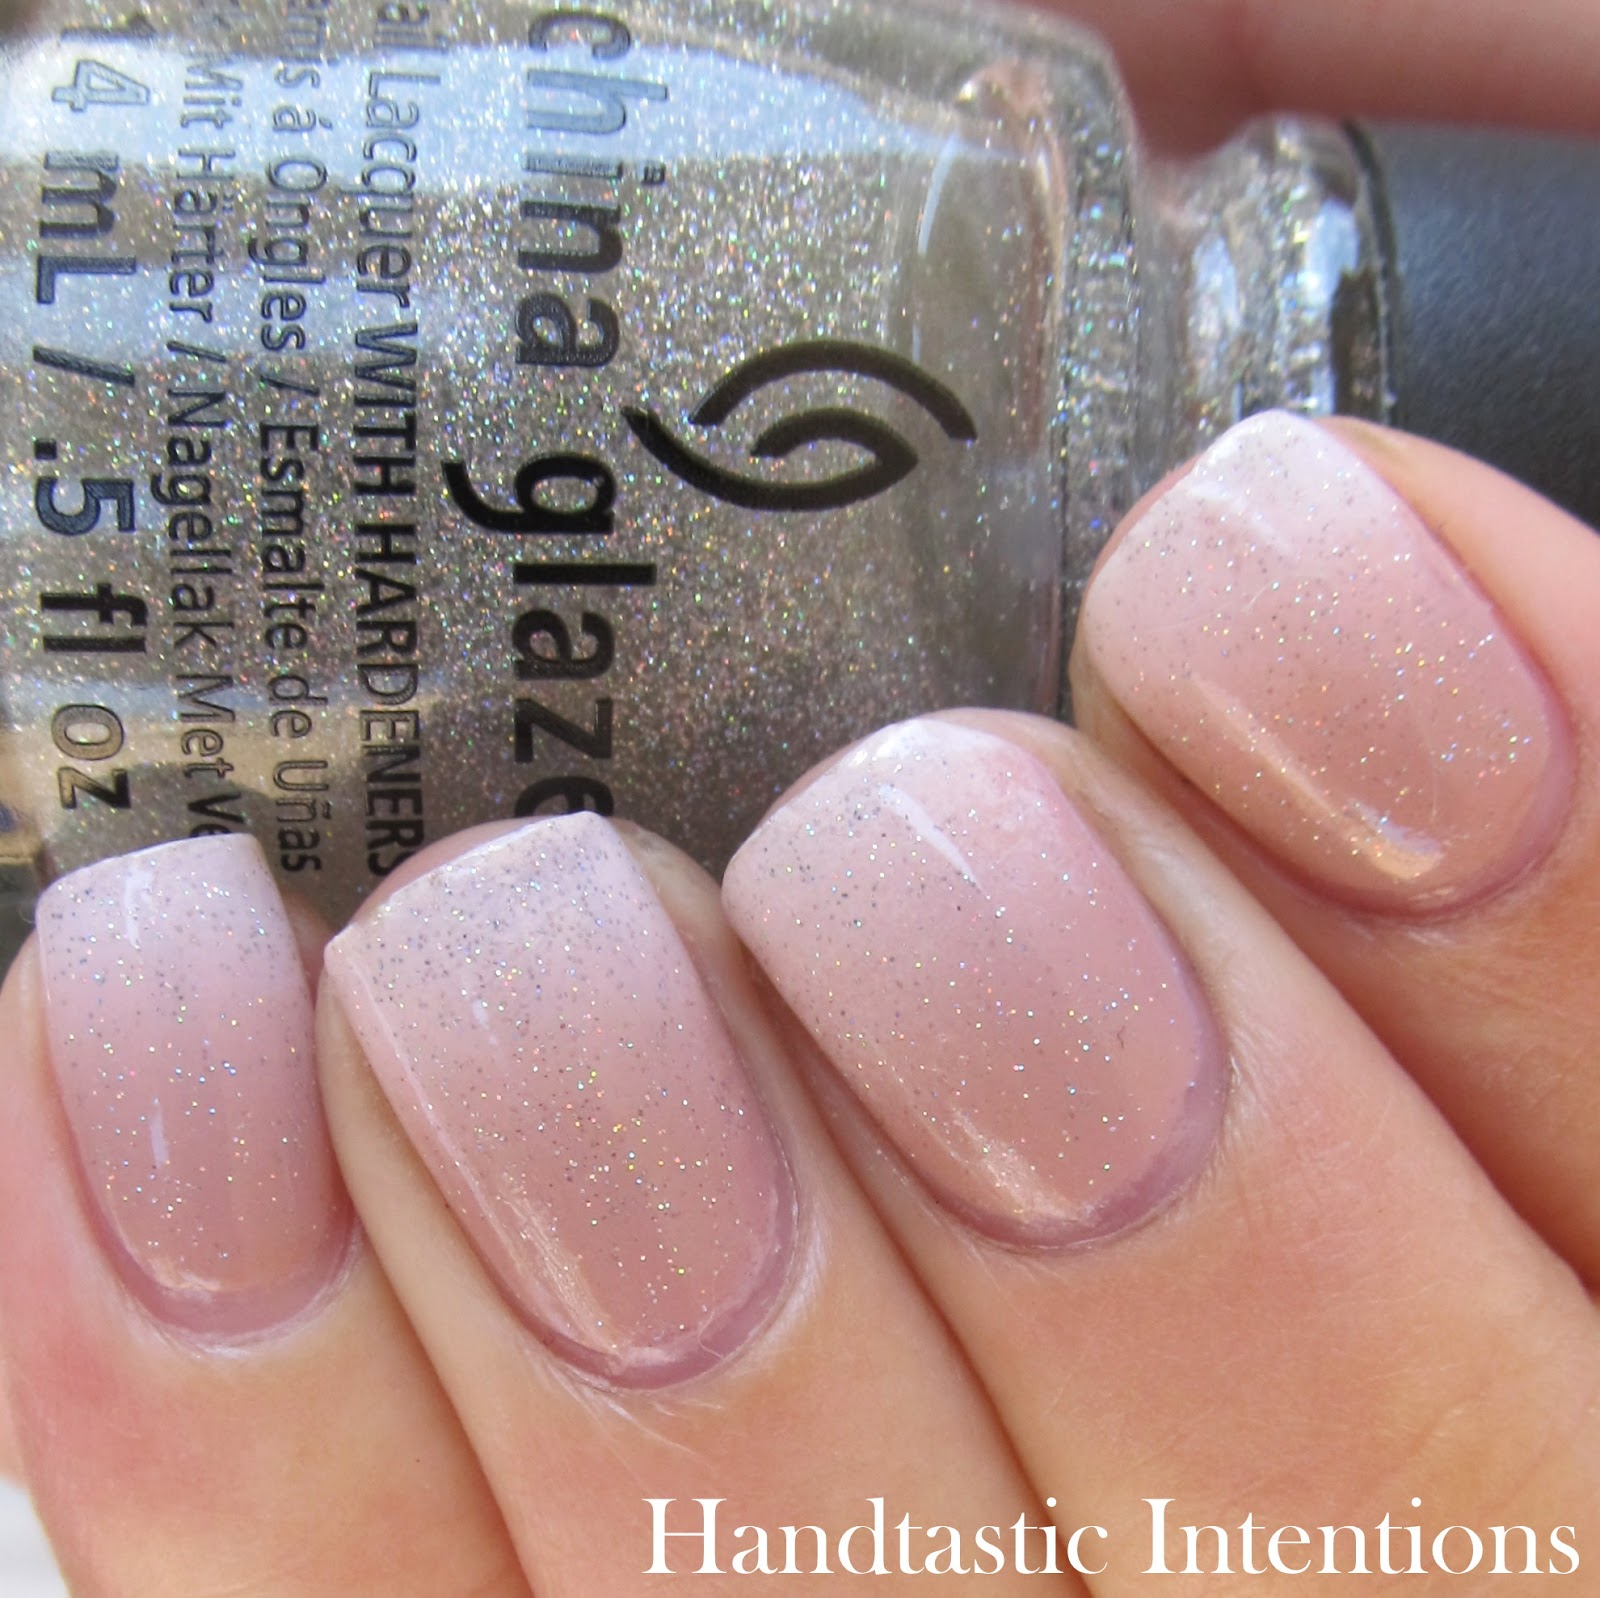 Handtastic Intentions: Nail Art: #31DC2014 Day 10 Gradient